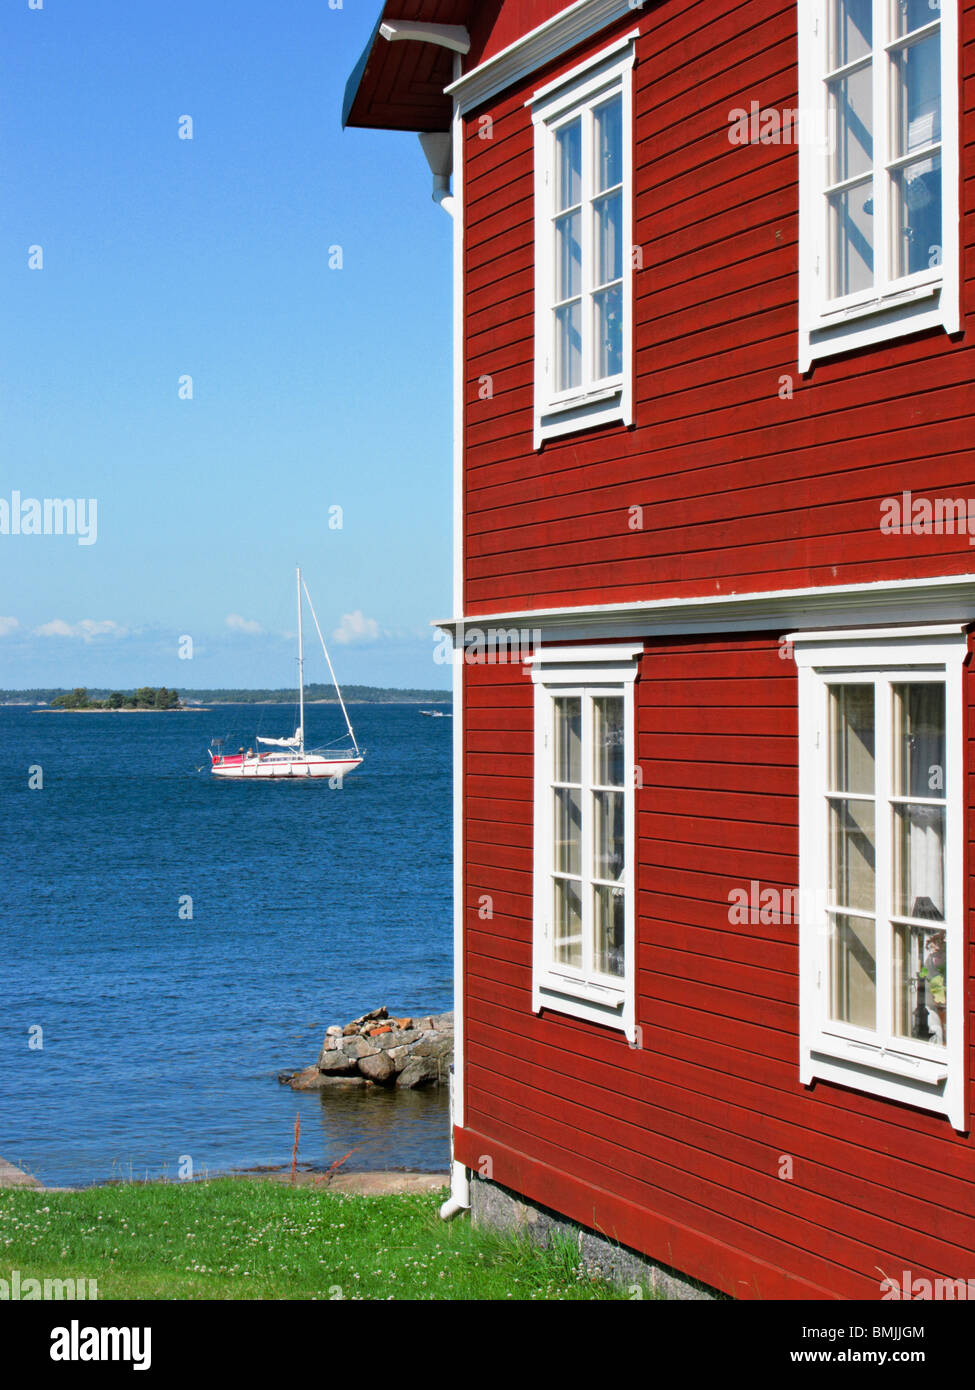 Scandinavia, Sweden, Stockholm, Sailing boat on sea with boathouse in foreground - Stock Image